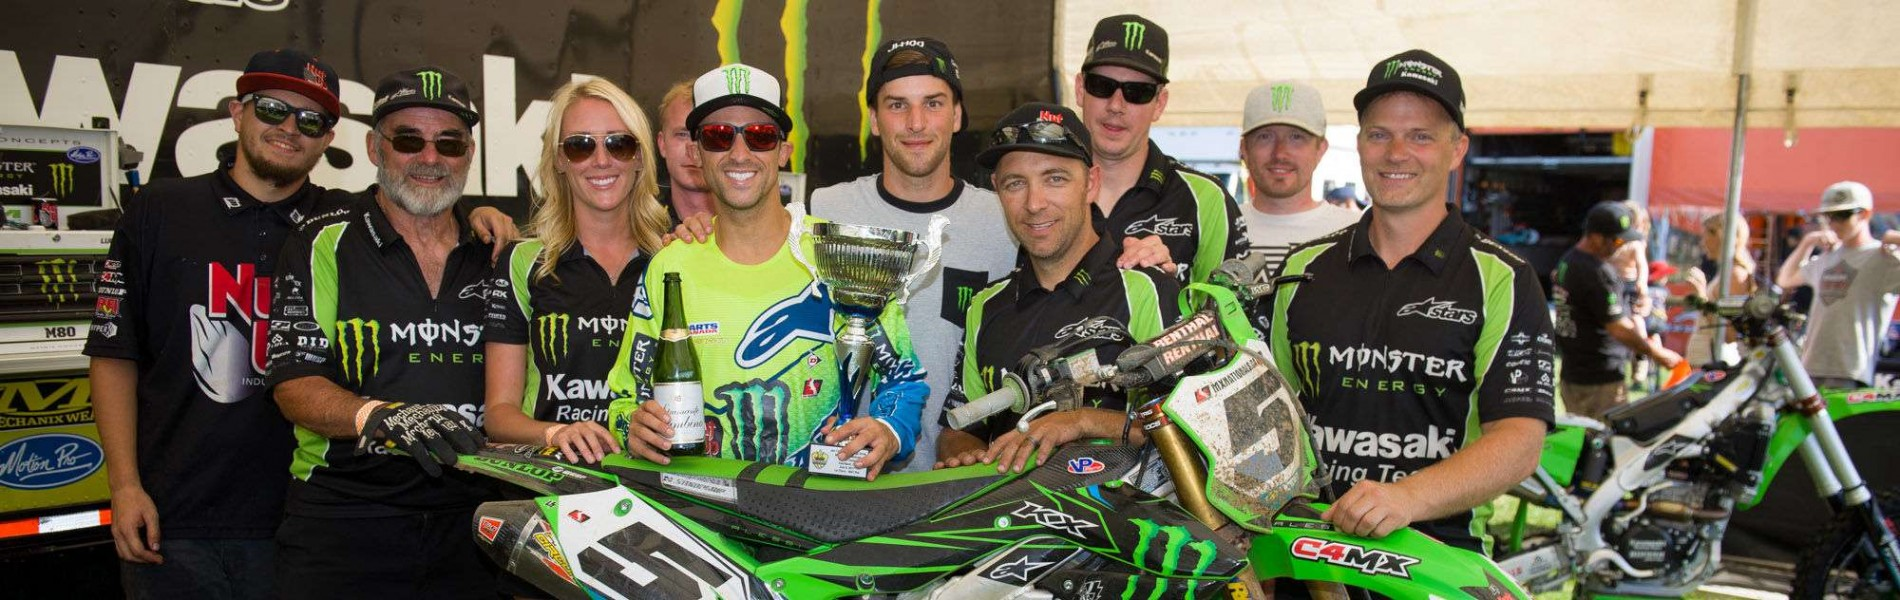 Lifestyle and action shots of Mike Alessi, Team Monster Energy Alpinestars Kawasaki & Jacob Hayes from the 2017 Canadian MX Nationals at Gopher Dunes in Courtland, Ontario